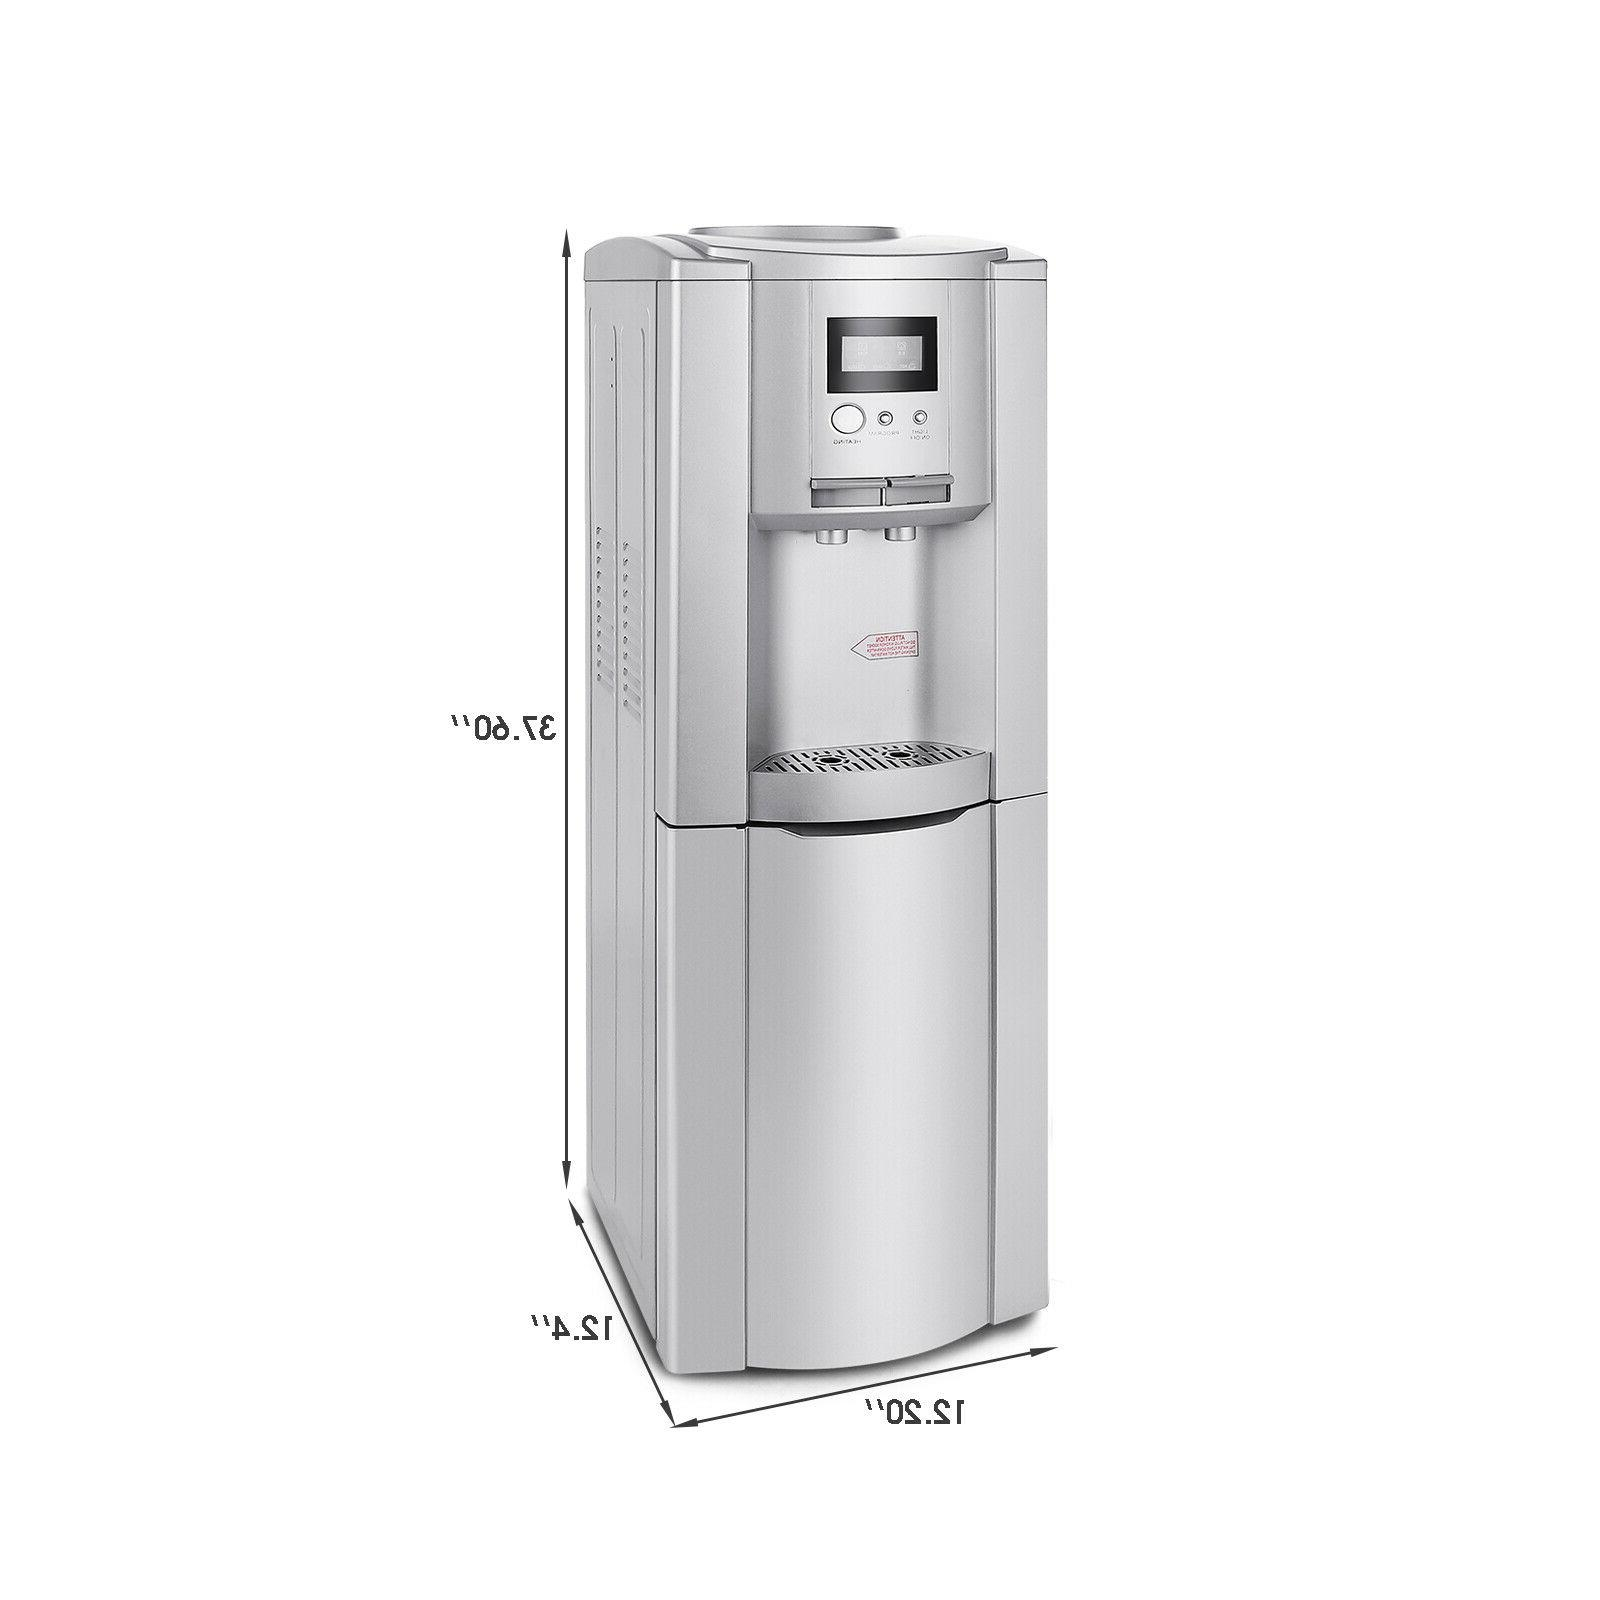 New Loading Hot/Cold Water Dispenser Safety Home Office